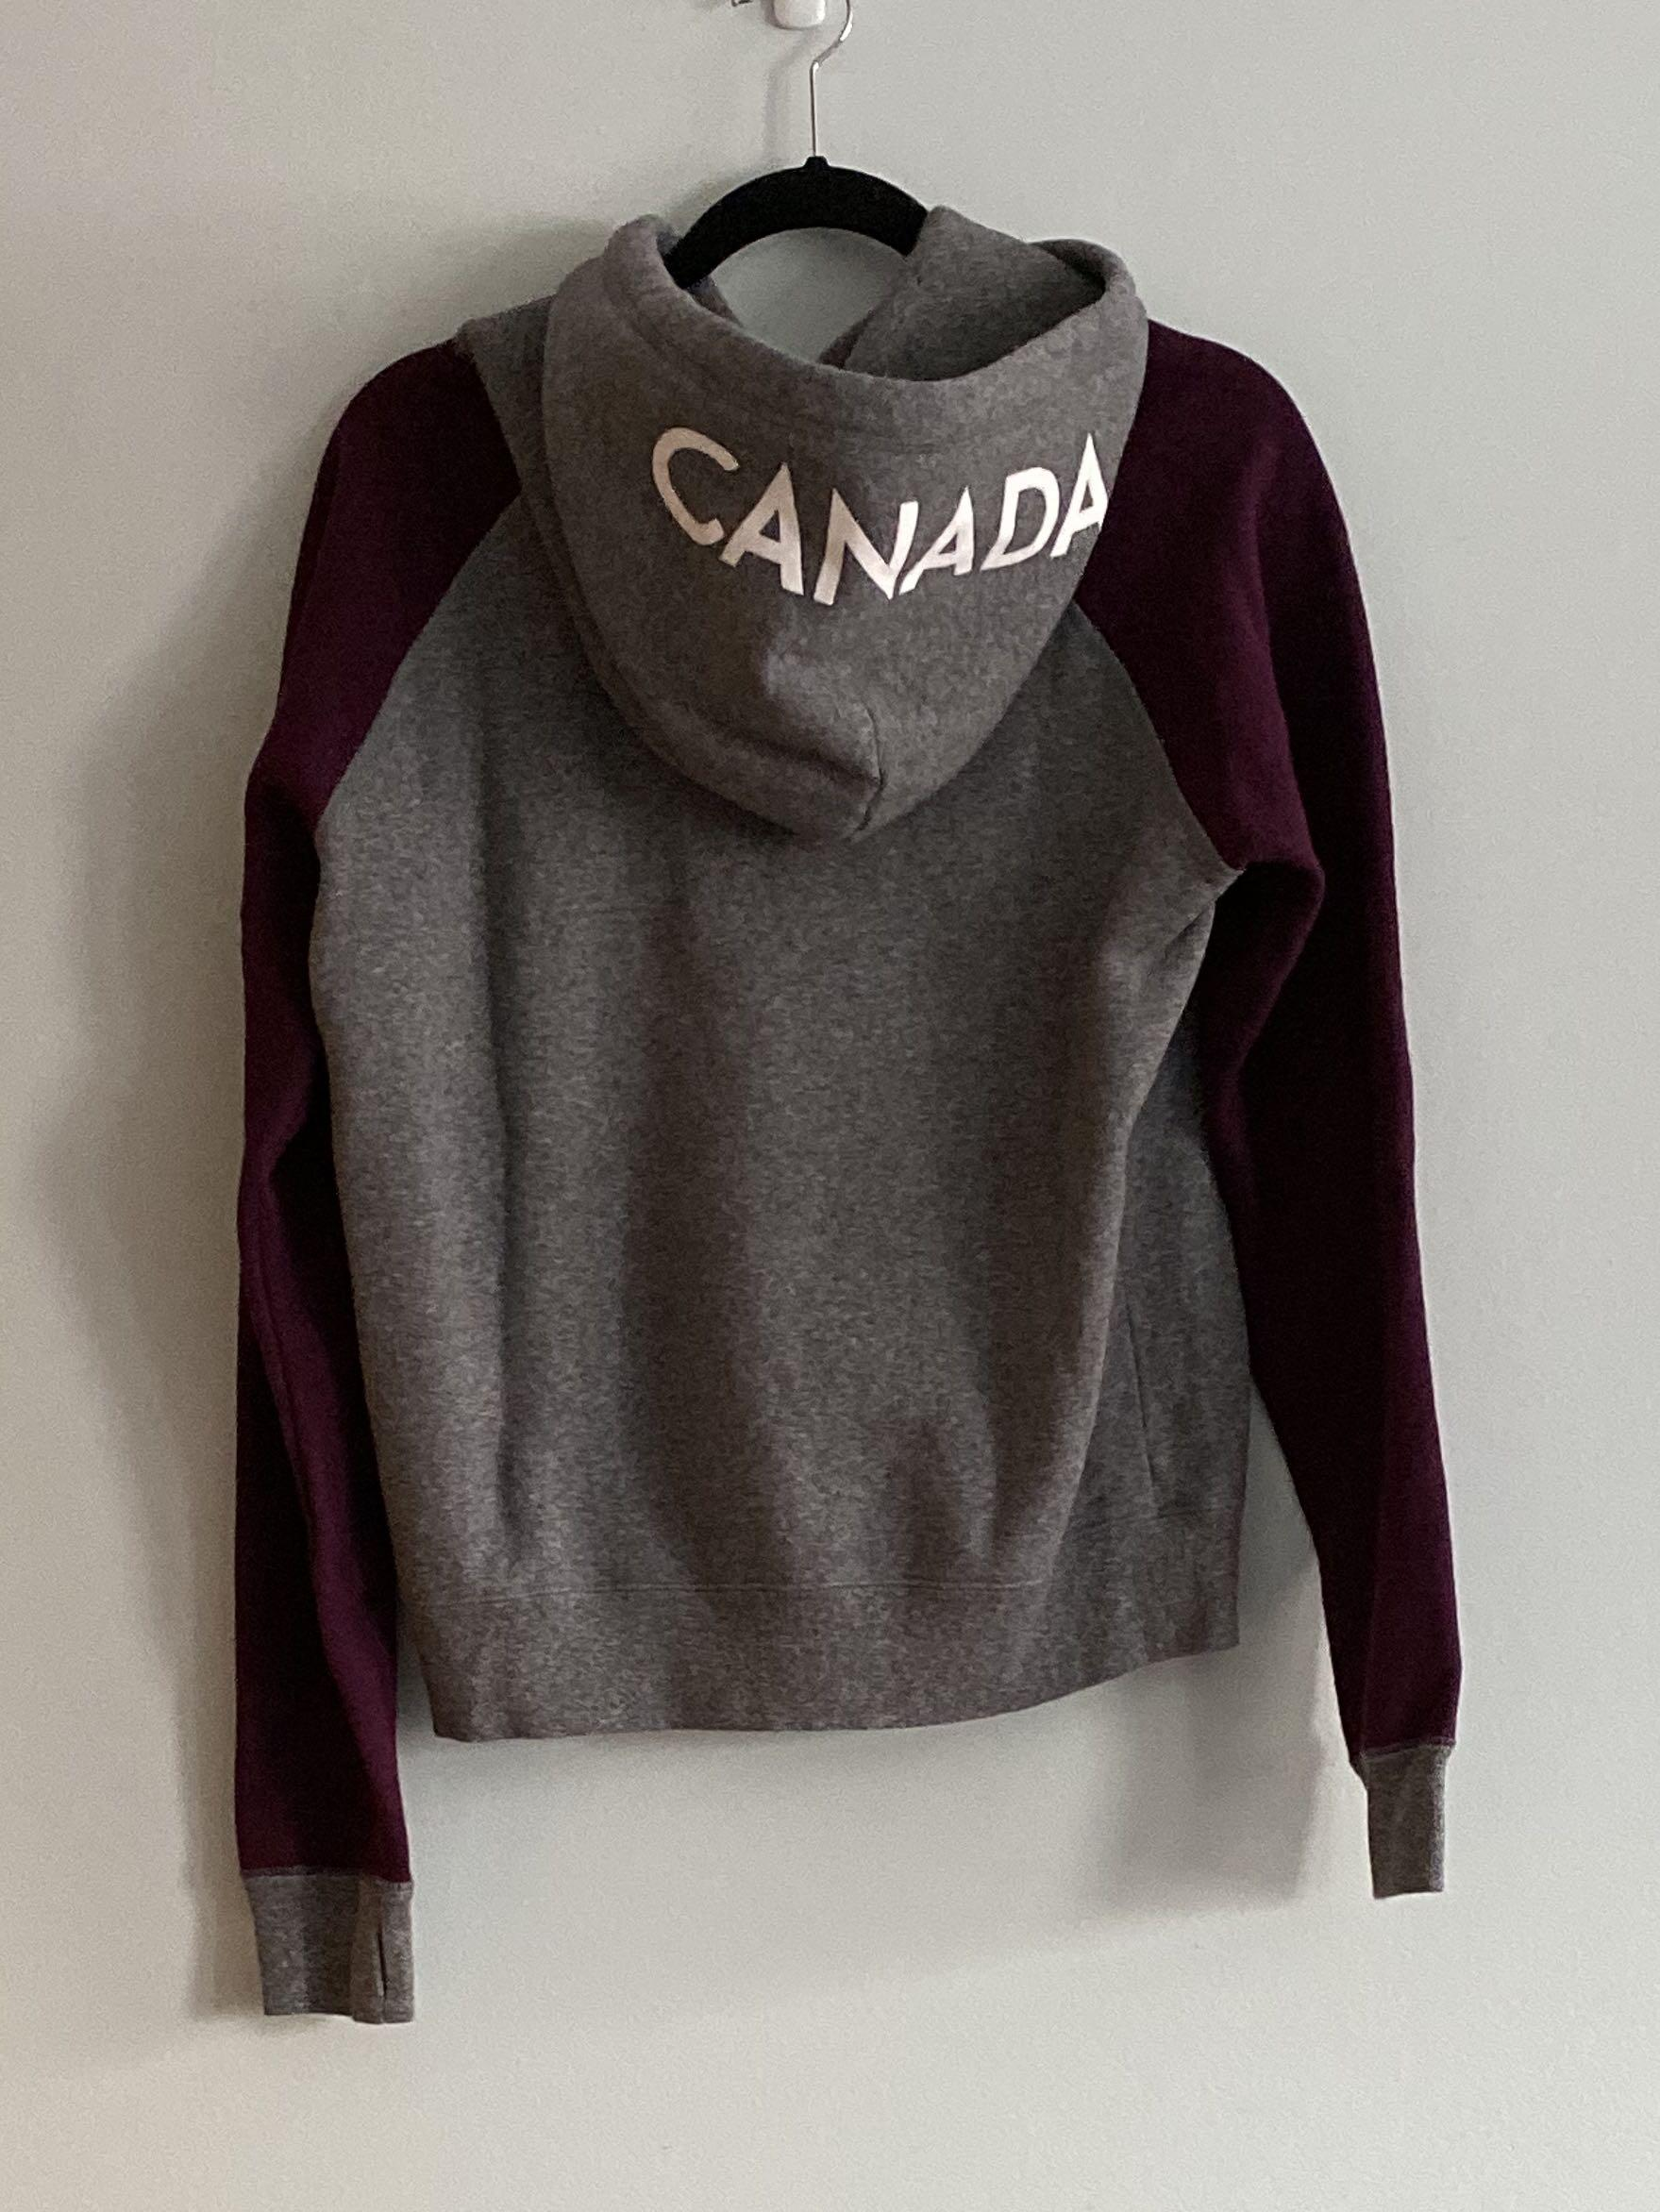 Roots Canada 150 anniversary limited edition Ottawa hoodie